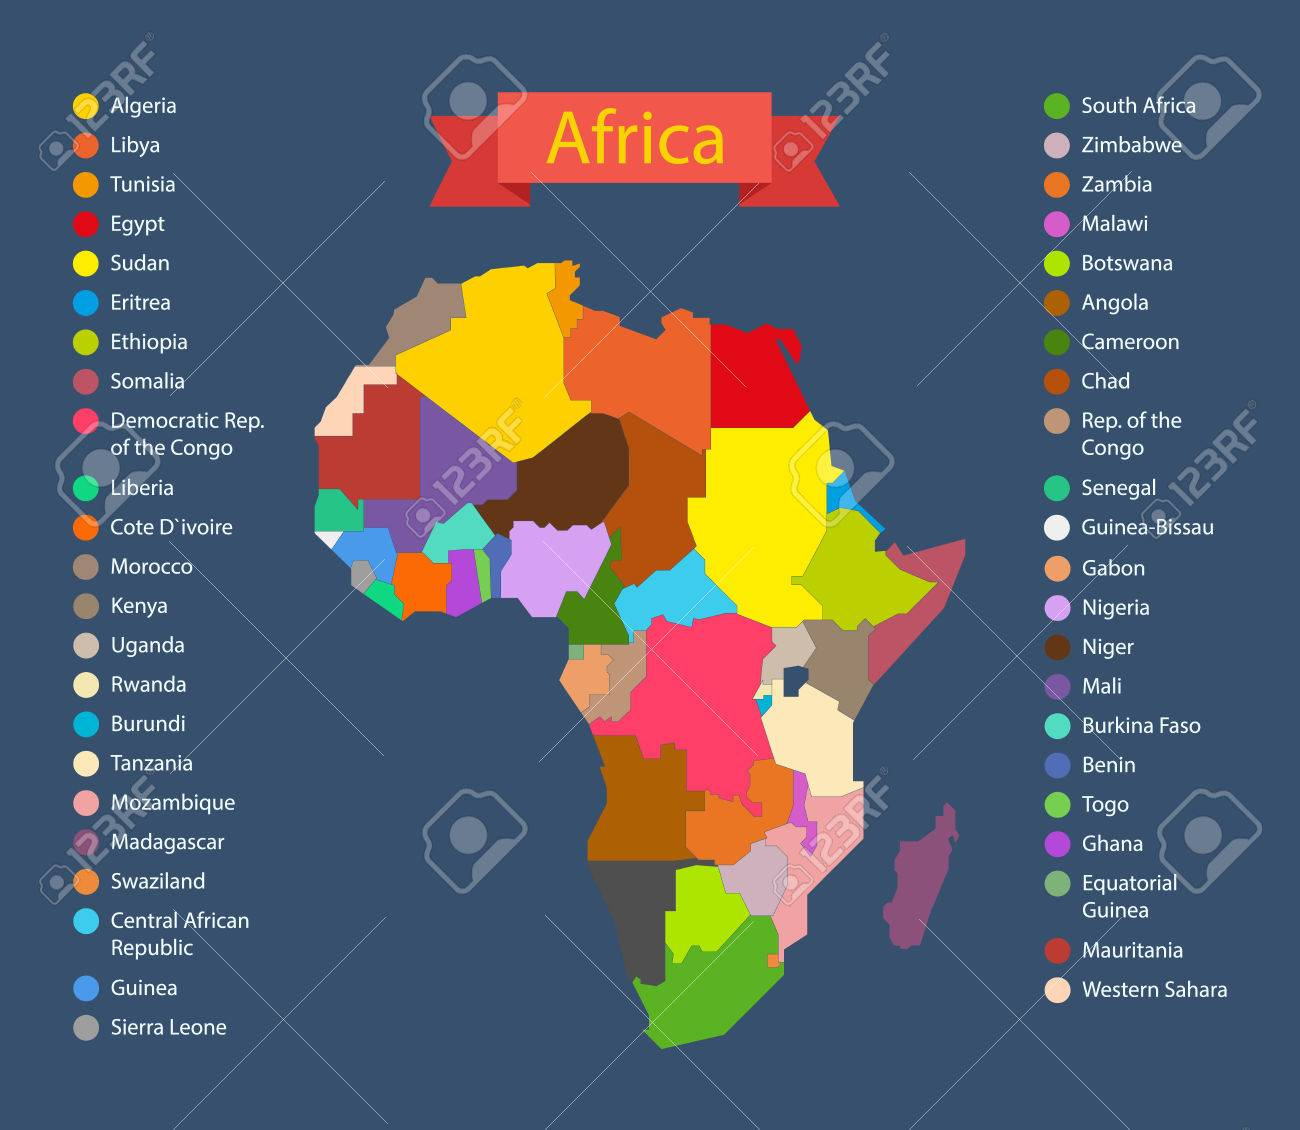 World map infographic template countries of africa royalty free vector world map infographic template countries of africa gumiabroncs Choice Image